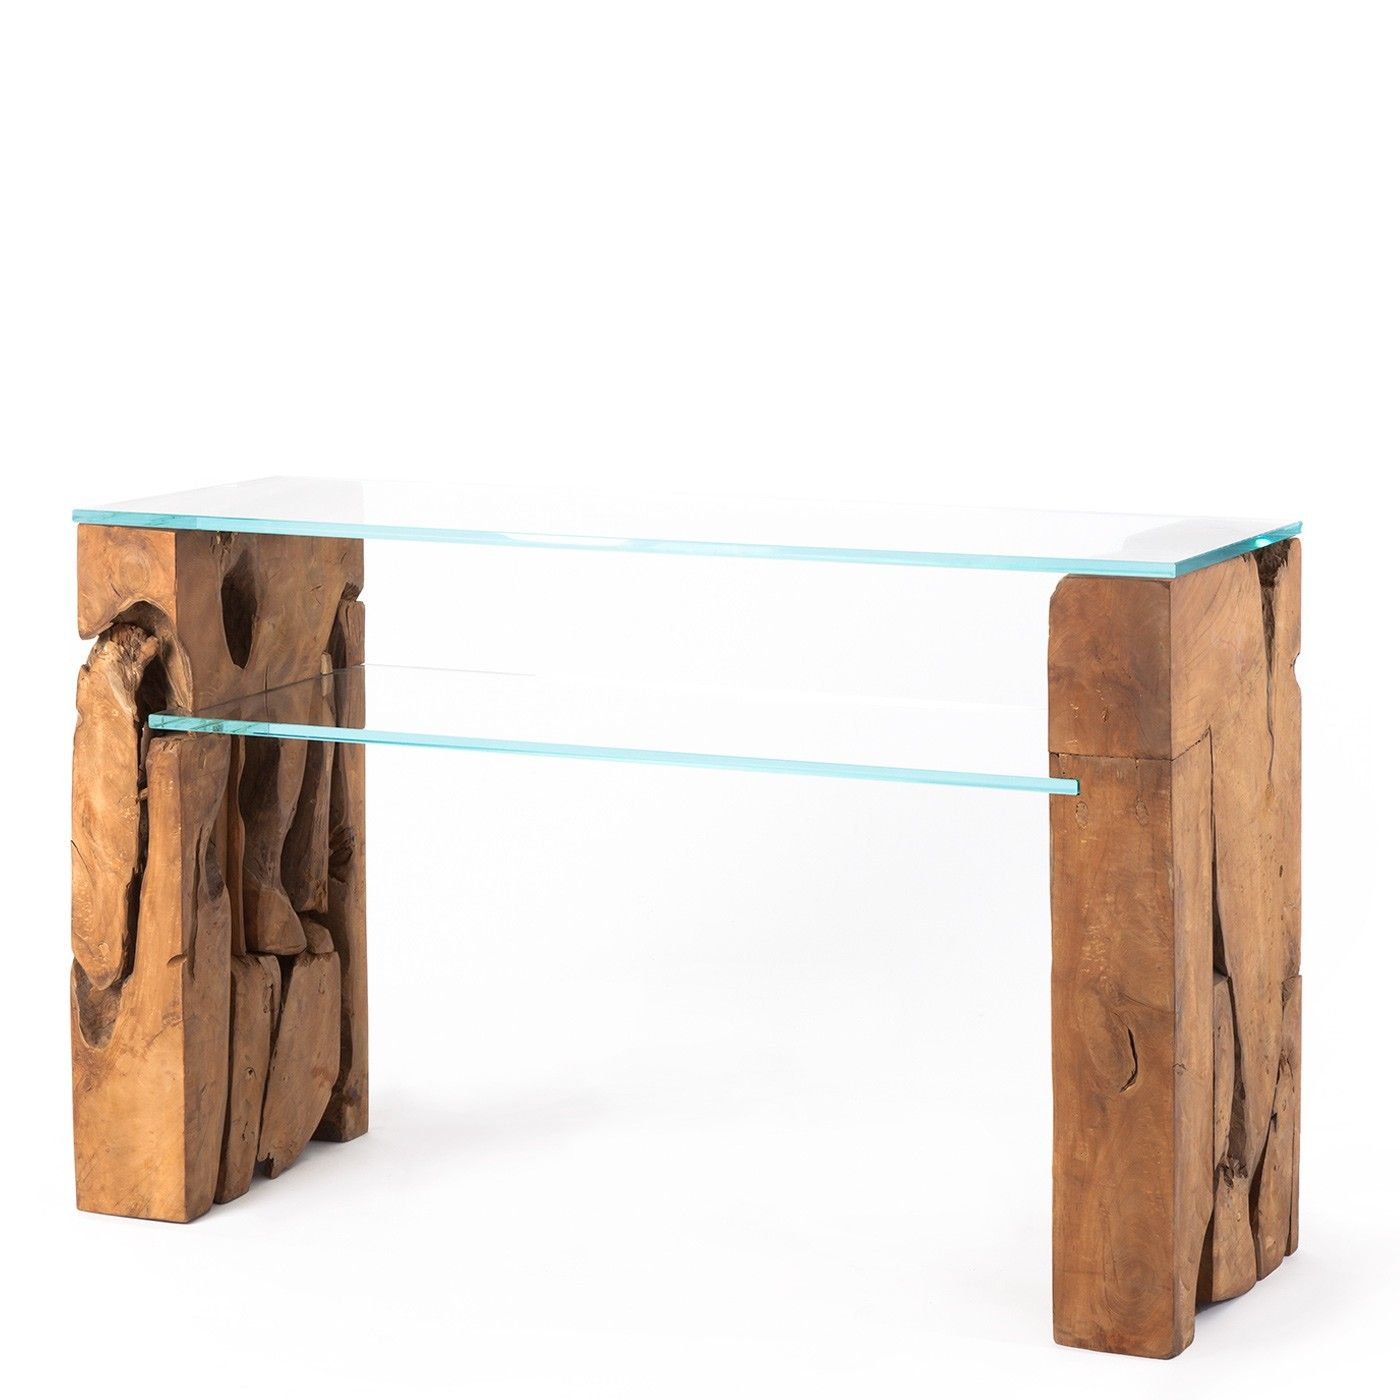 Glass Console Table With Teak Root Base Occasional Tables Living Raft Furniture London With Images Glass Table Set Glass Console Table Living Table